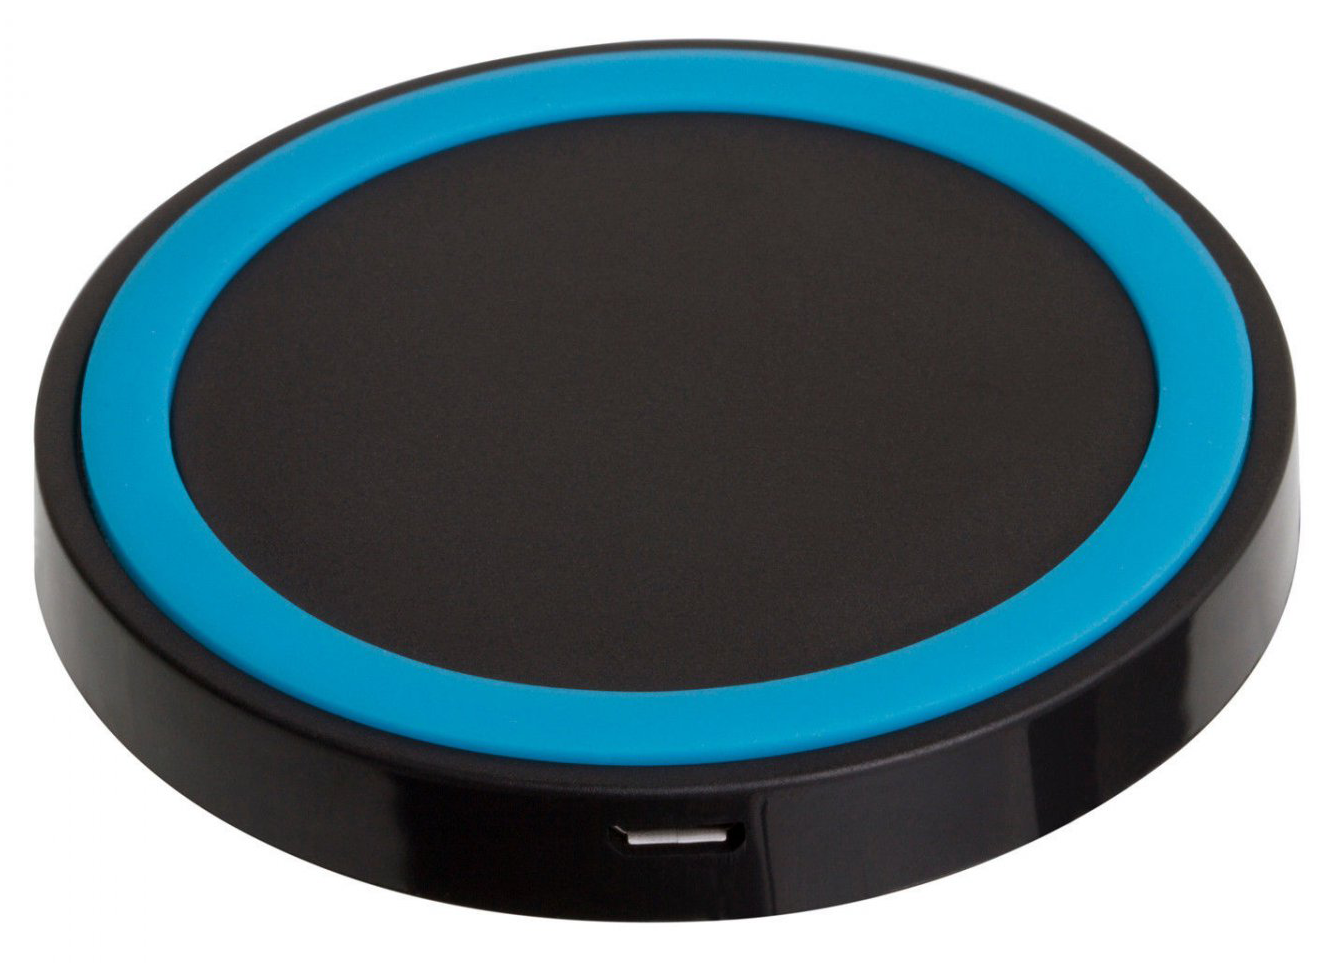 CARCAM Wireless Charging Pad (blue)